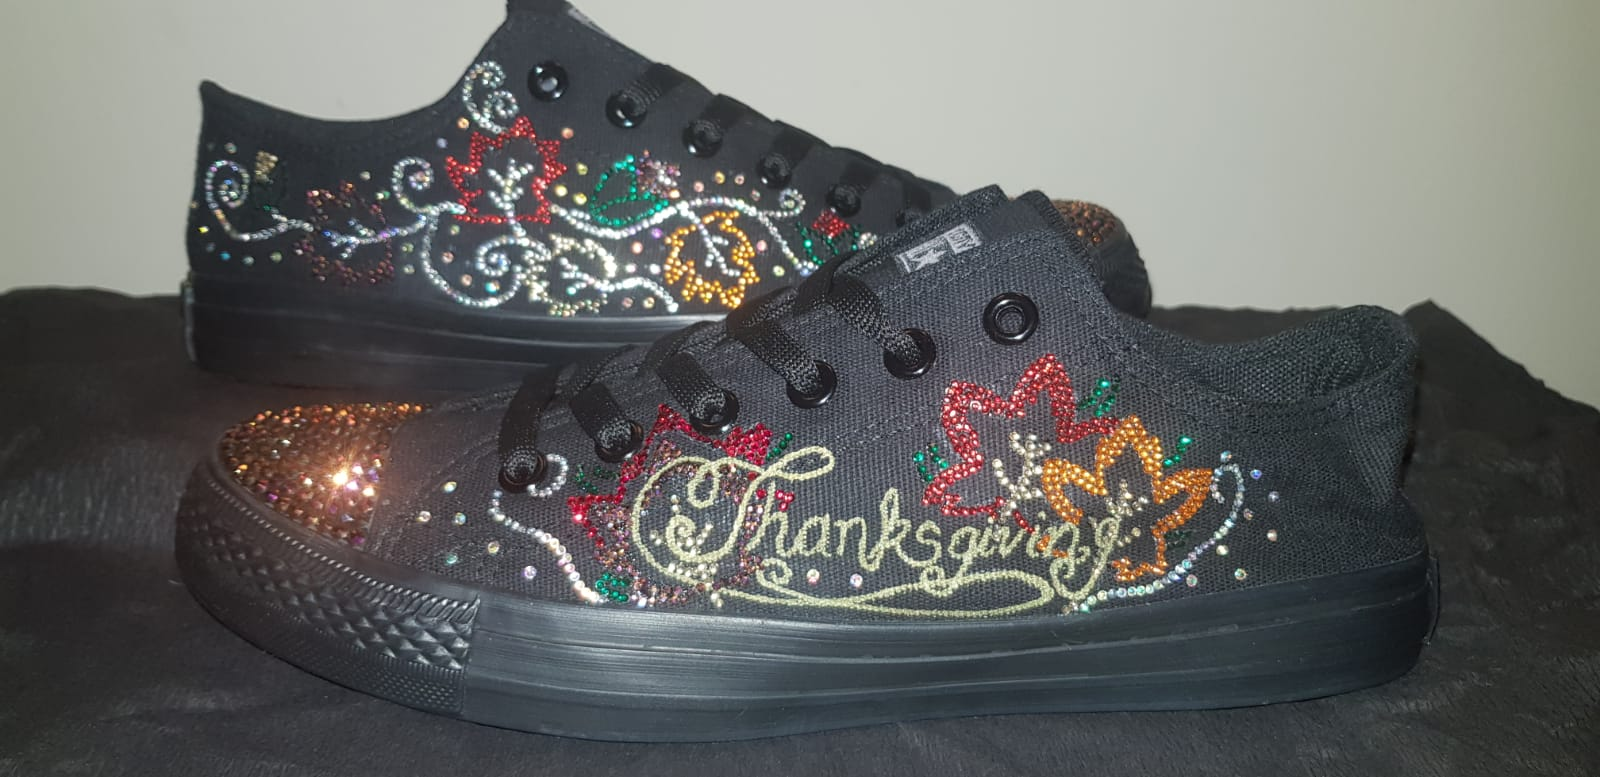 Thanksgiving Converse Low Top